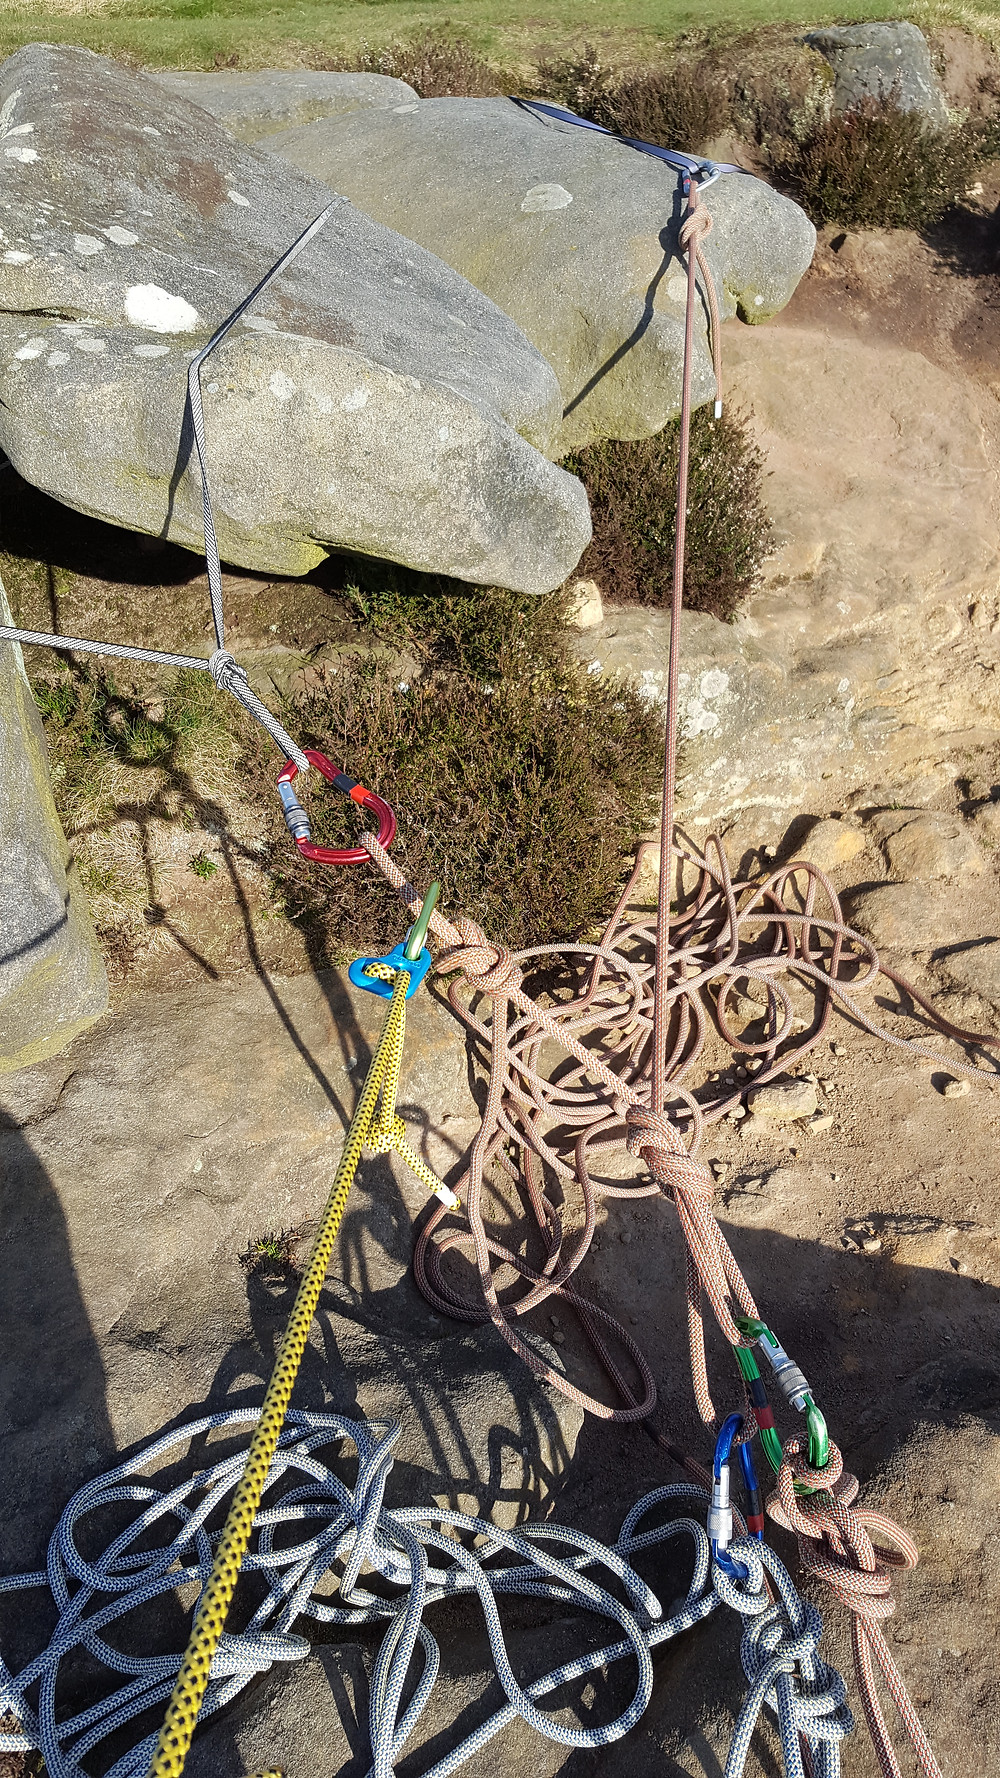 SPA Type Abseil